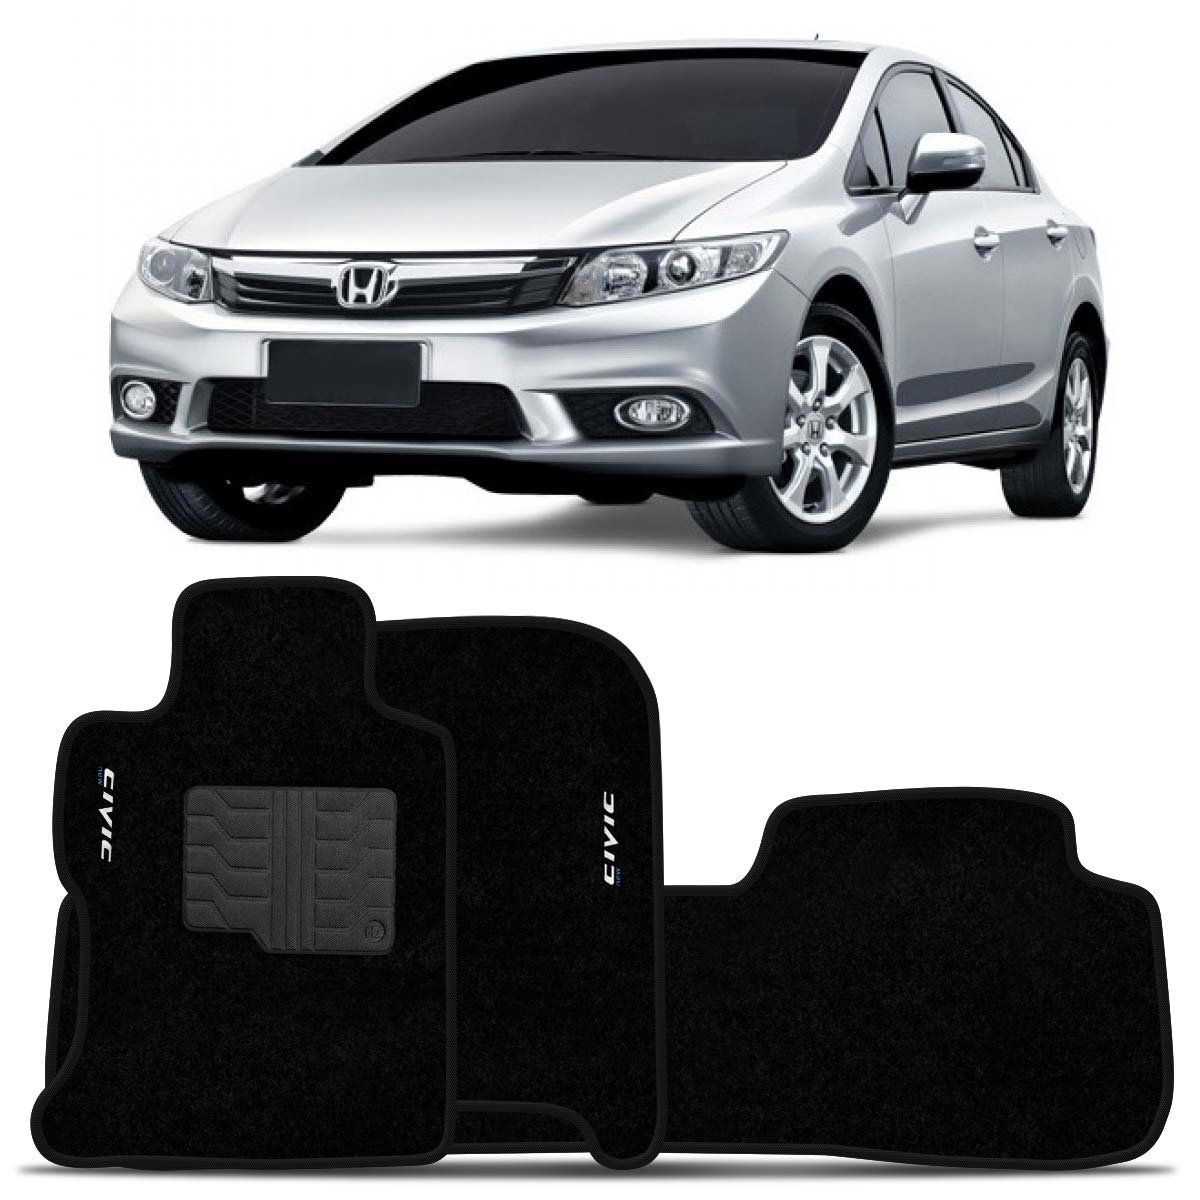 Tapete Carpete New Civic 2007 2008 2009 2010 2011 2012 2013 Preto